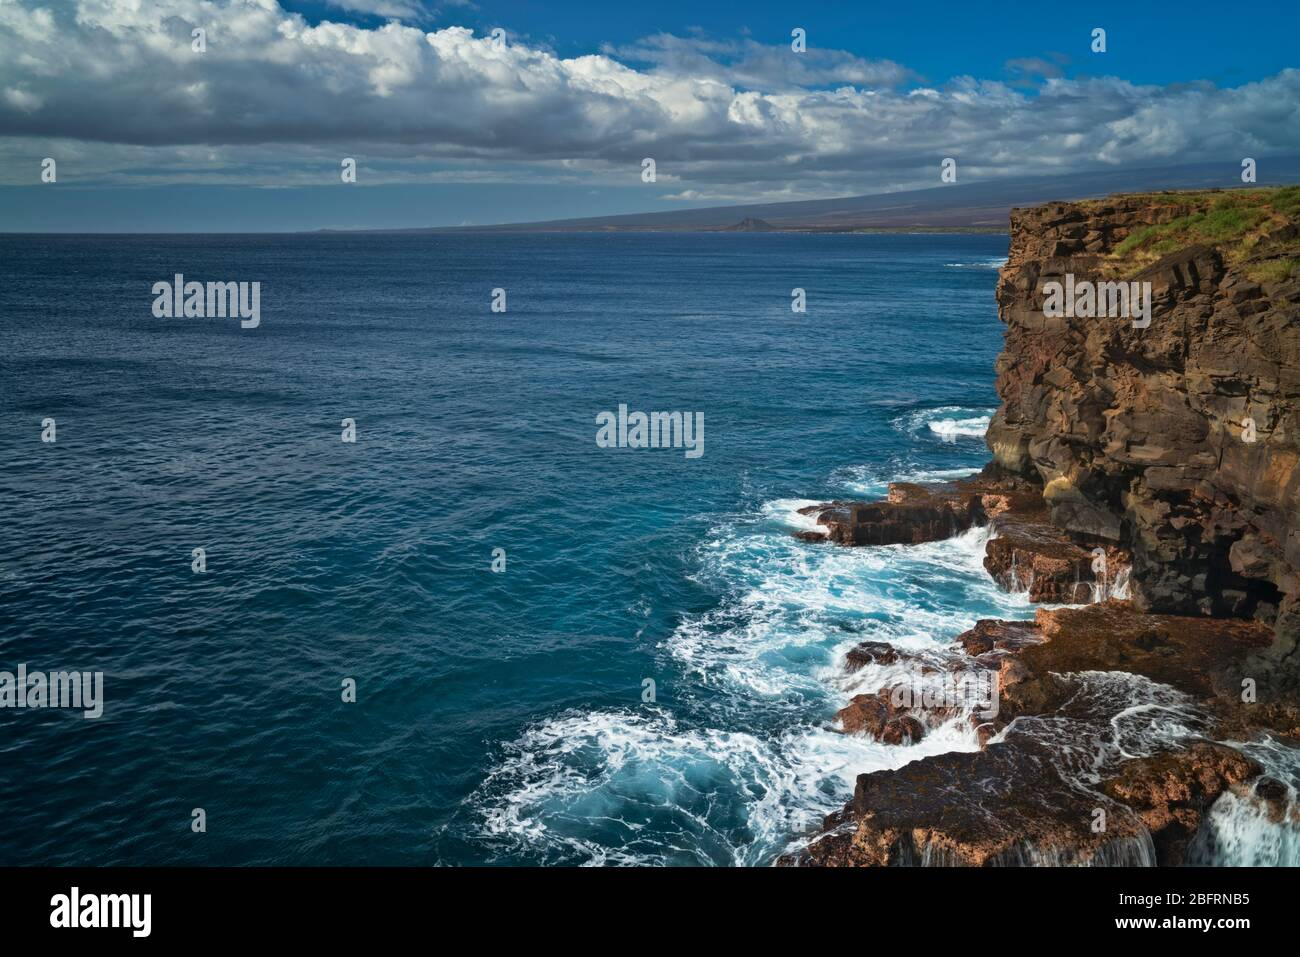 Waves crash against the volcanic cliffs at South Point on the Big Island of Hawaii and the southern most location in the United States. Stock Photo